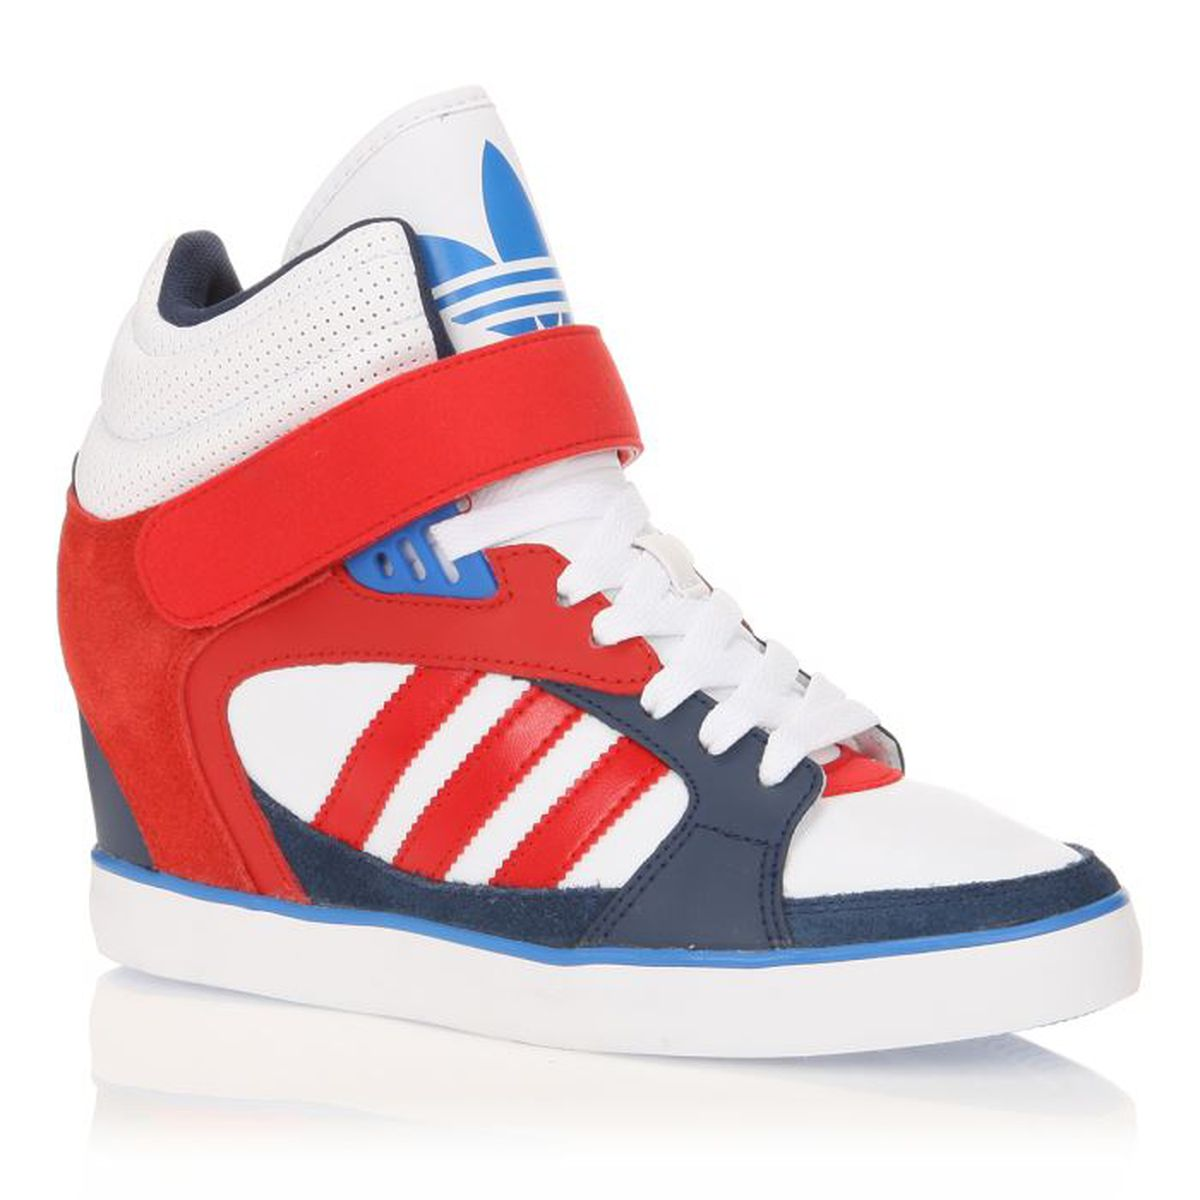 adidas baskets cuir amberlight heel w femme femme bleu blanc rouge achat vente adidas. Black Bedroom Furniture Sets. Home Design Ideas